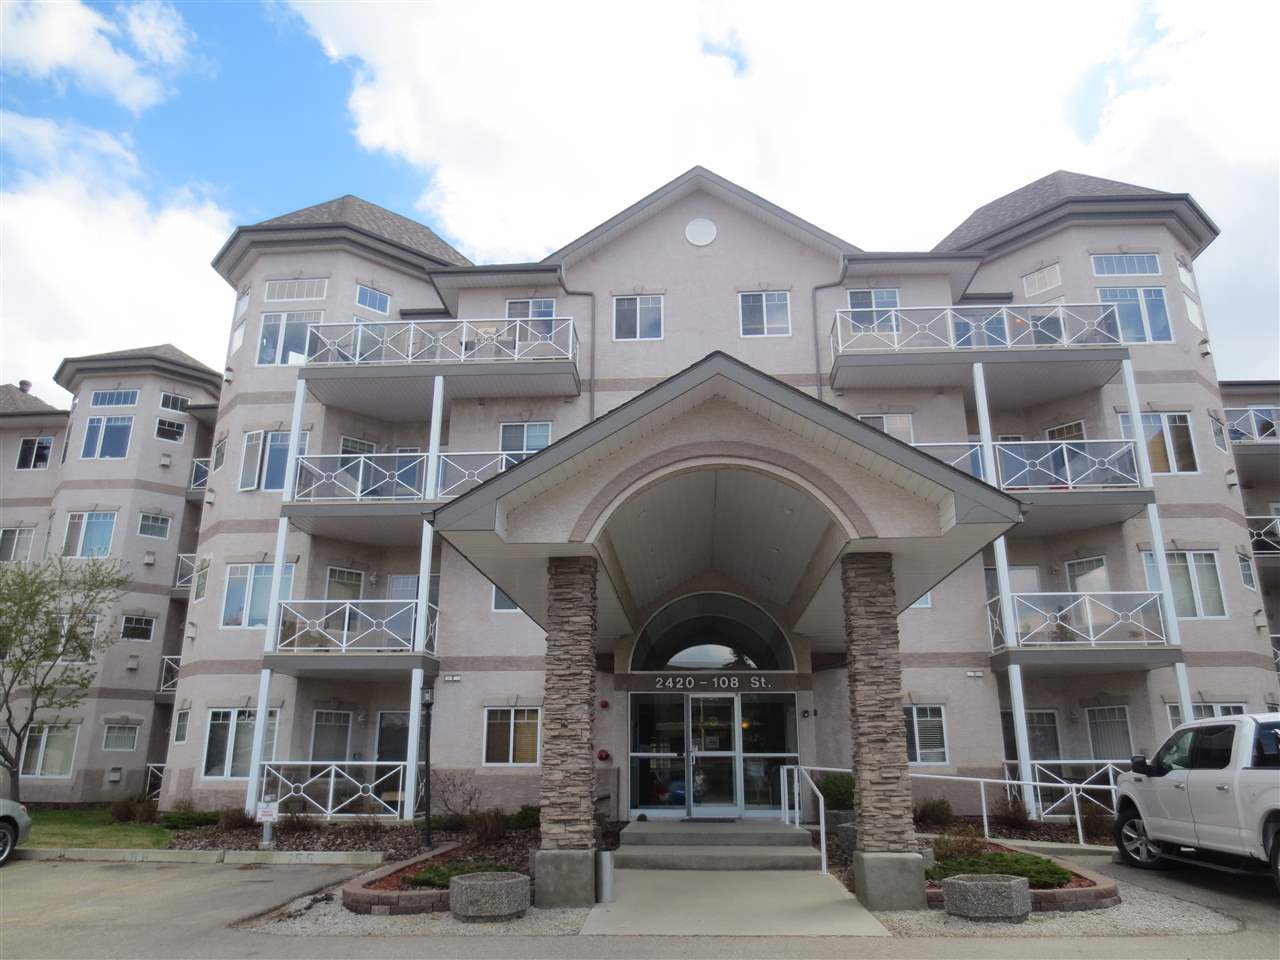 Main Photo: 119 2420 108 Street in Edmonton: Zone 16 Condo for sale : MLS(r) # E4064534